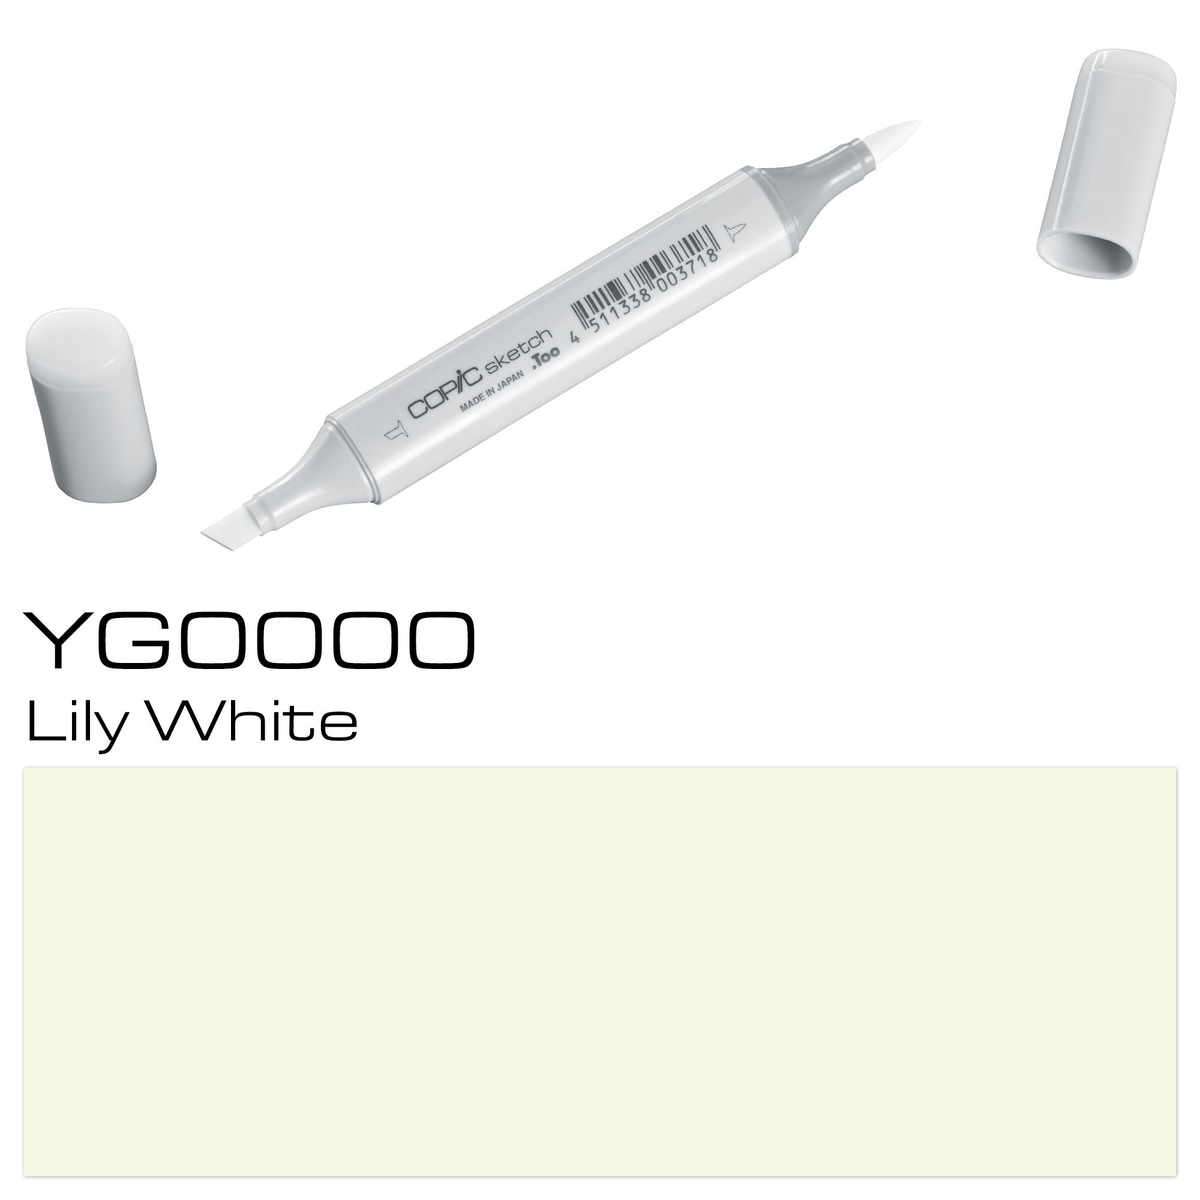 Copic Sketch YG 0000 lily whit